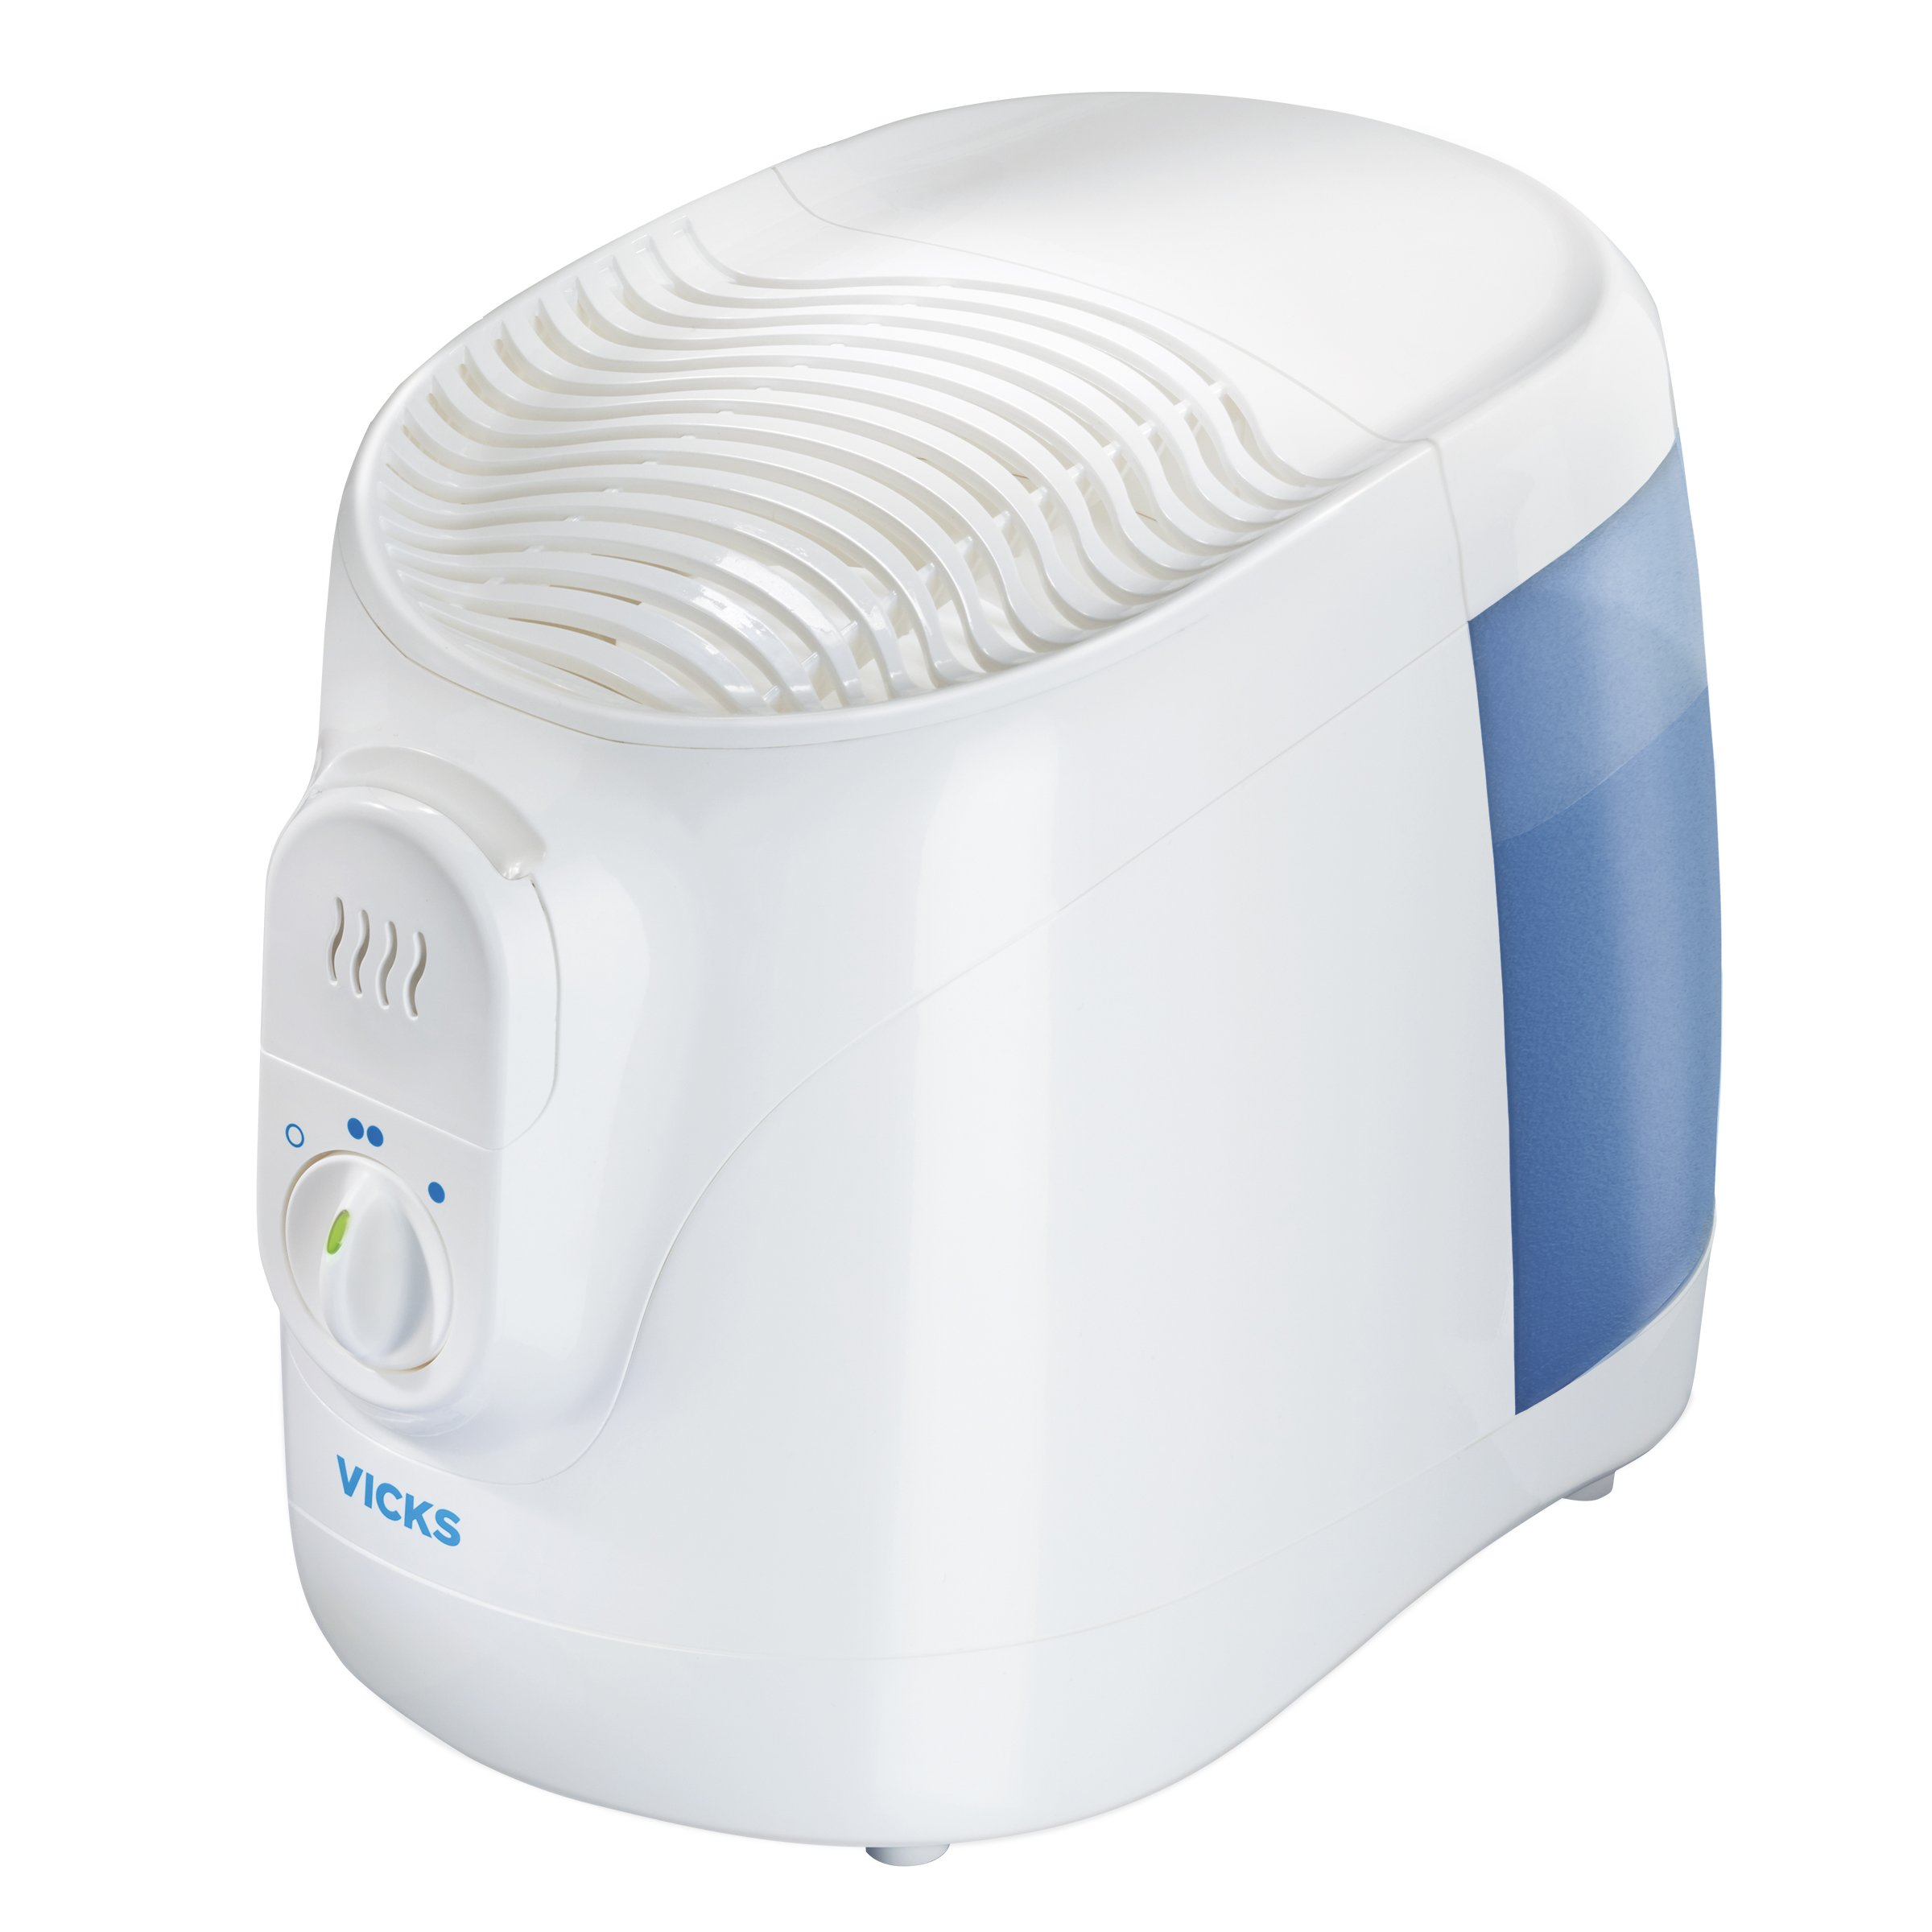 Vicks Filtered Cool Moisture Humidifier Filtered Humidifier for Bedrooms, Baby, Kids Rooms, Auto-Shut Off, 0.8 Gallon Tank for Medium Sized Rooms, Use with Vicks VapoPads